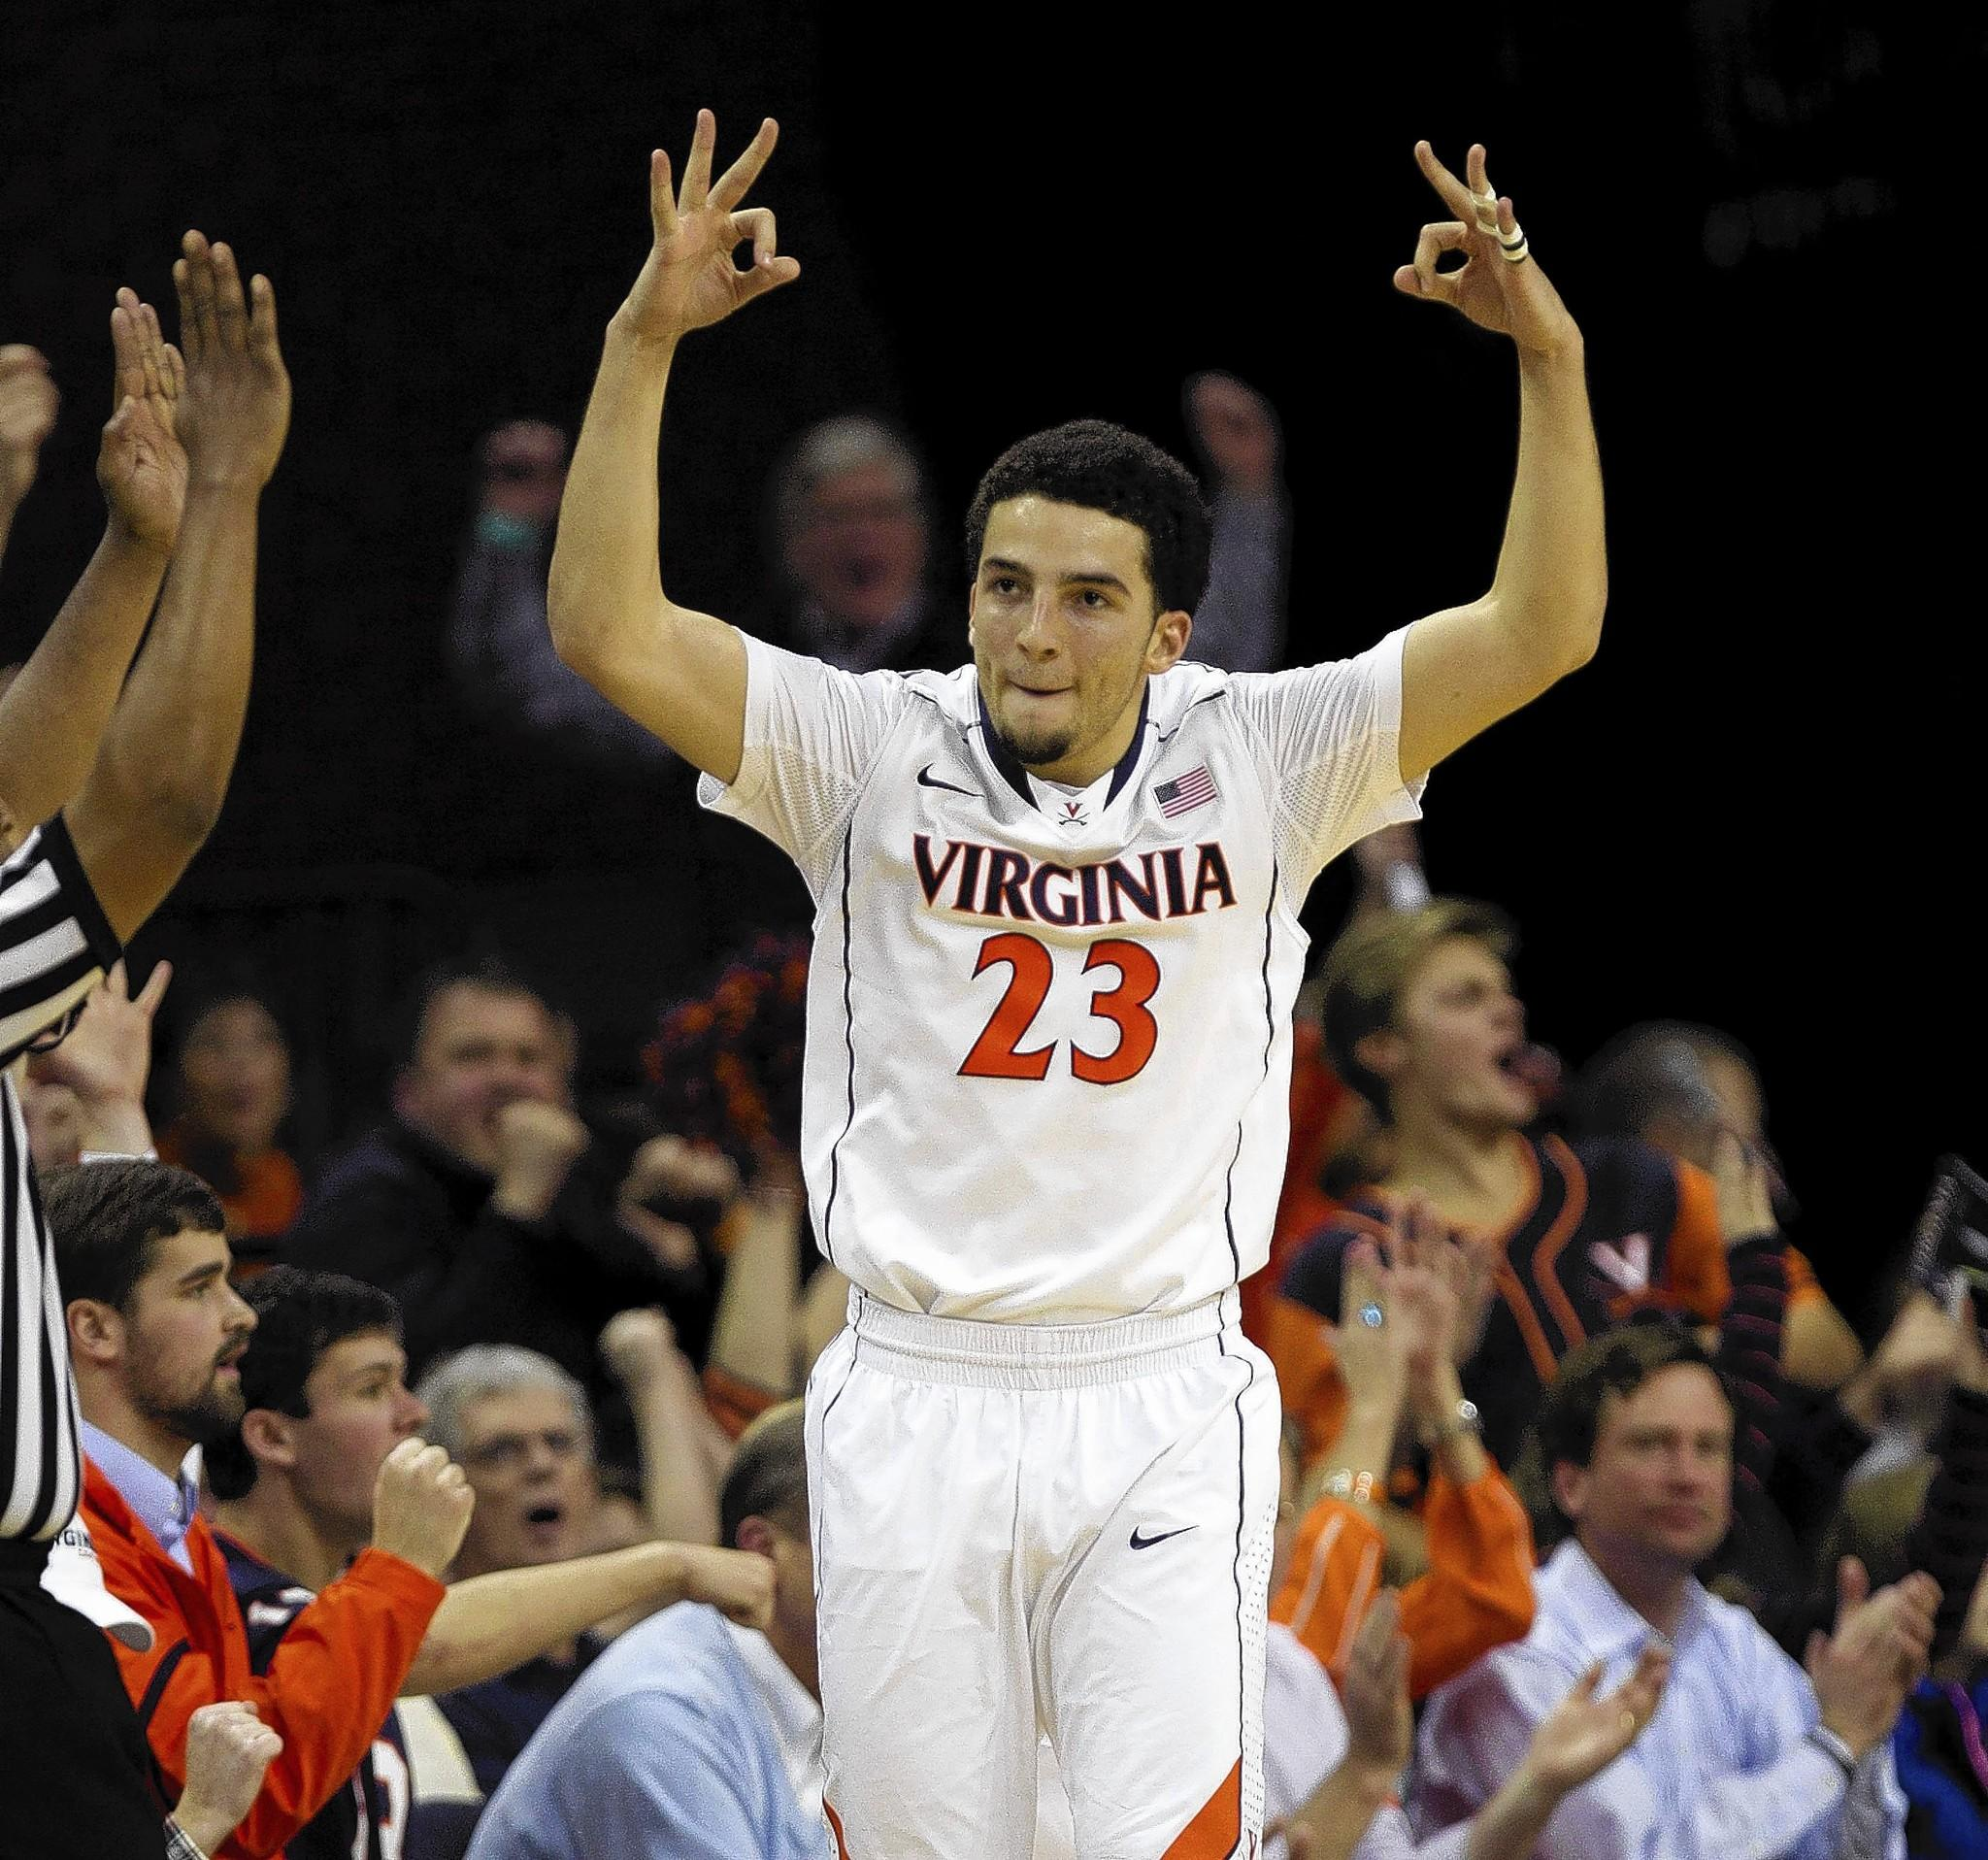 Virginia Cavaliers' London Perrantes (23) celebrates after sinking a 3-pointer against North Carolina in the first half at John Paul Jones Arena in Charlottesville, Va., on Monday, Jan. 20, 2014. Virginia rolled to a 76-61 victory over North Carolina.